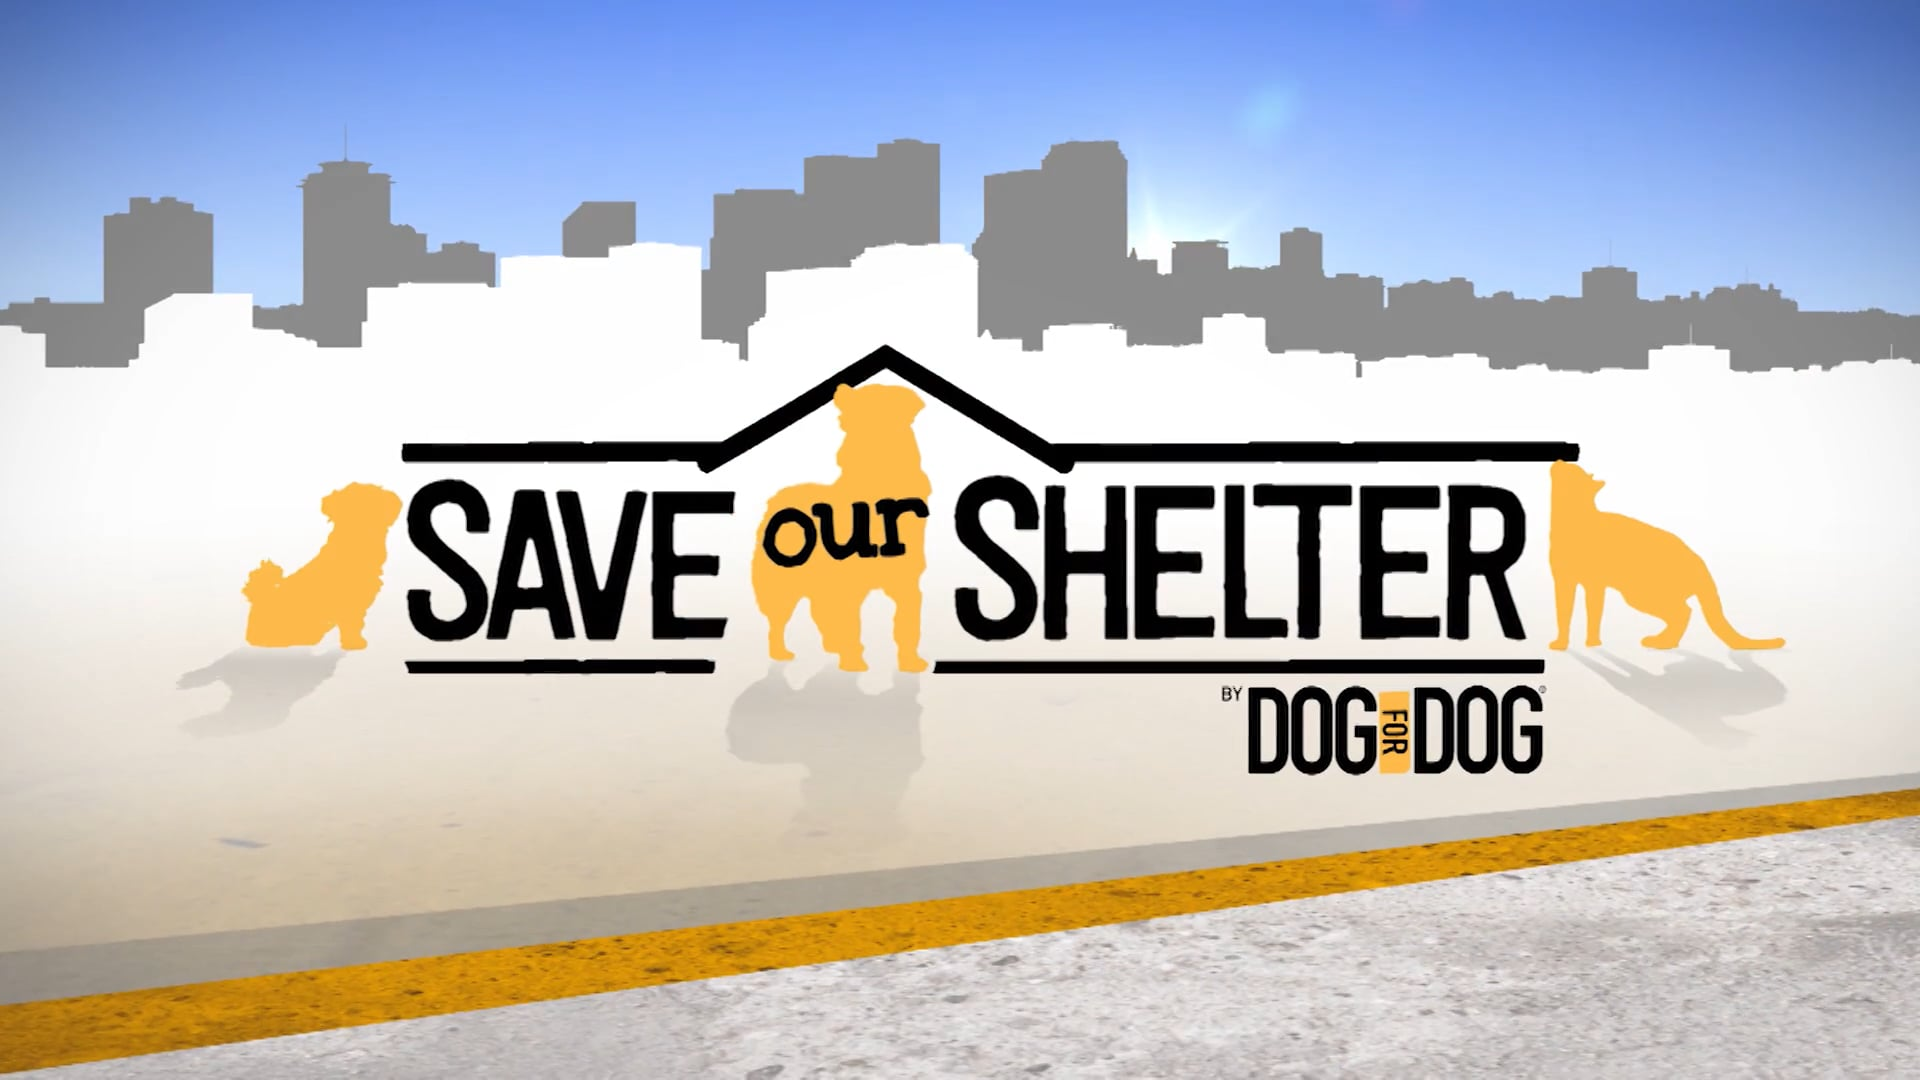 Save Our Shelter - The CW